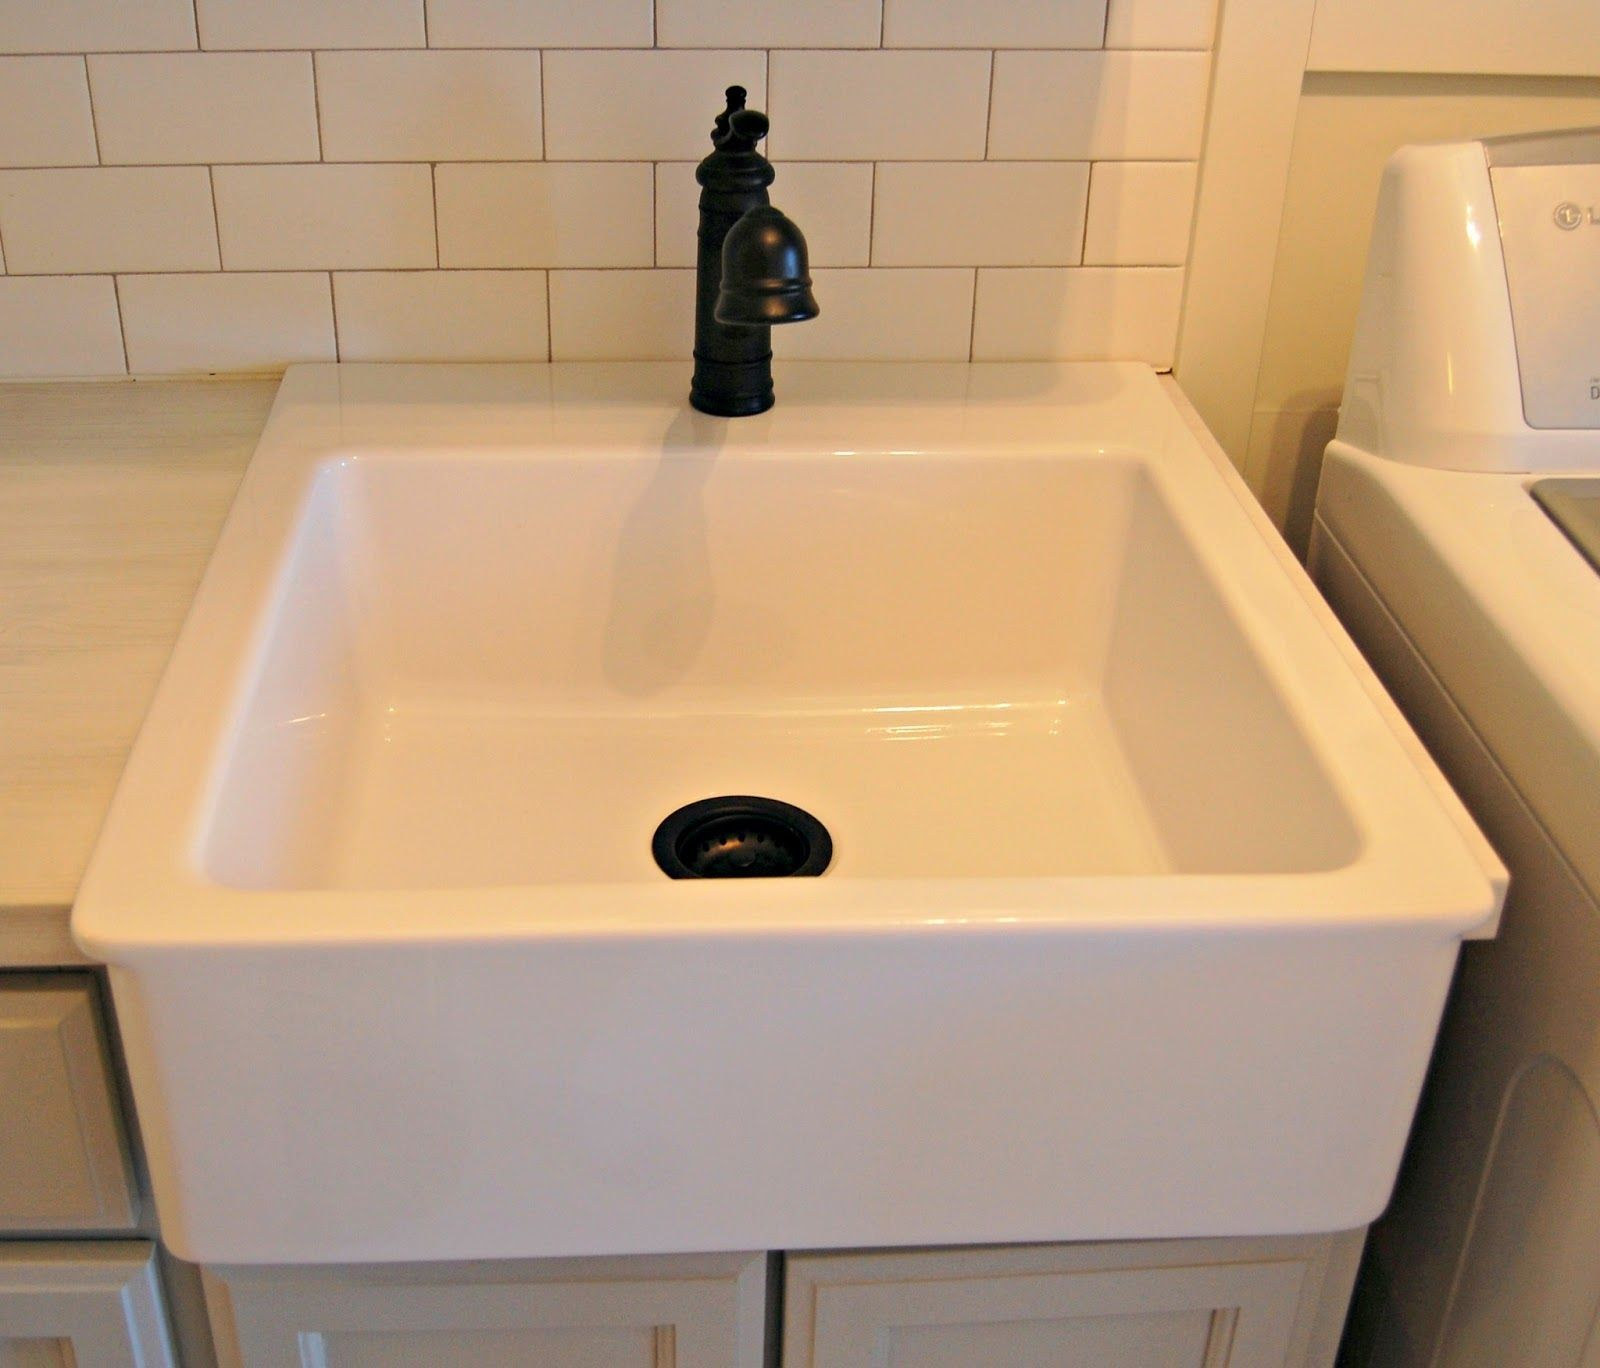 Utility Sink For Laundry Room With Cabinet Laundry Room Storage Laundry Room Sink Ikea Laundry Room